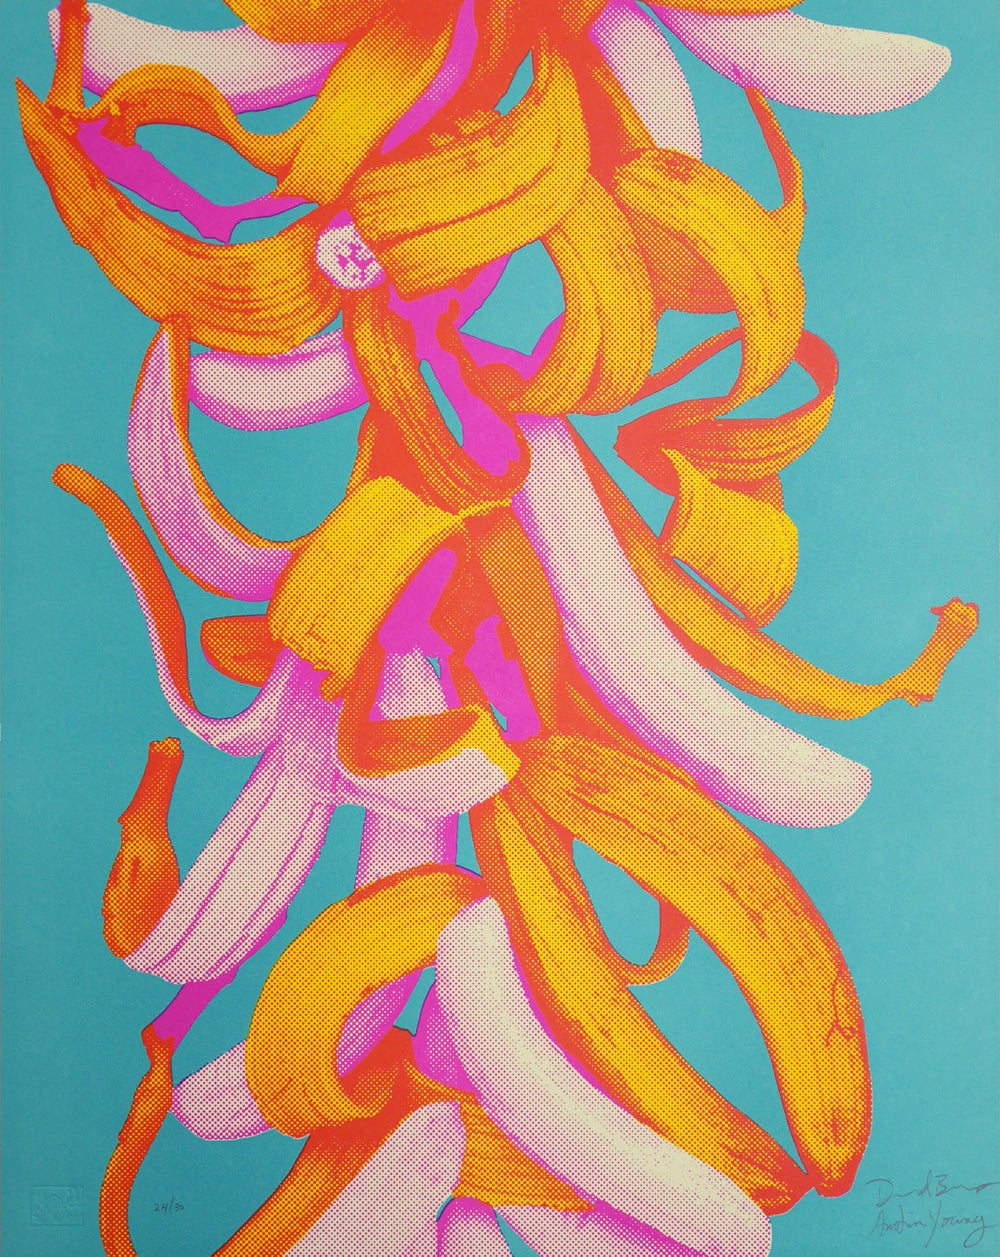 Image of Bananas in 3 Colors